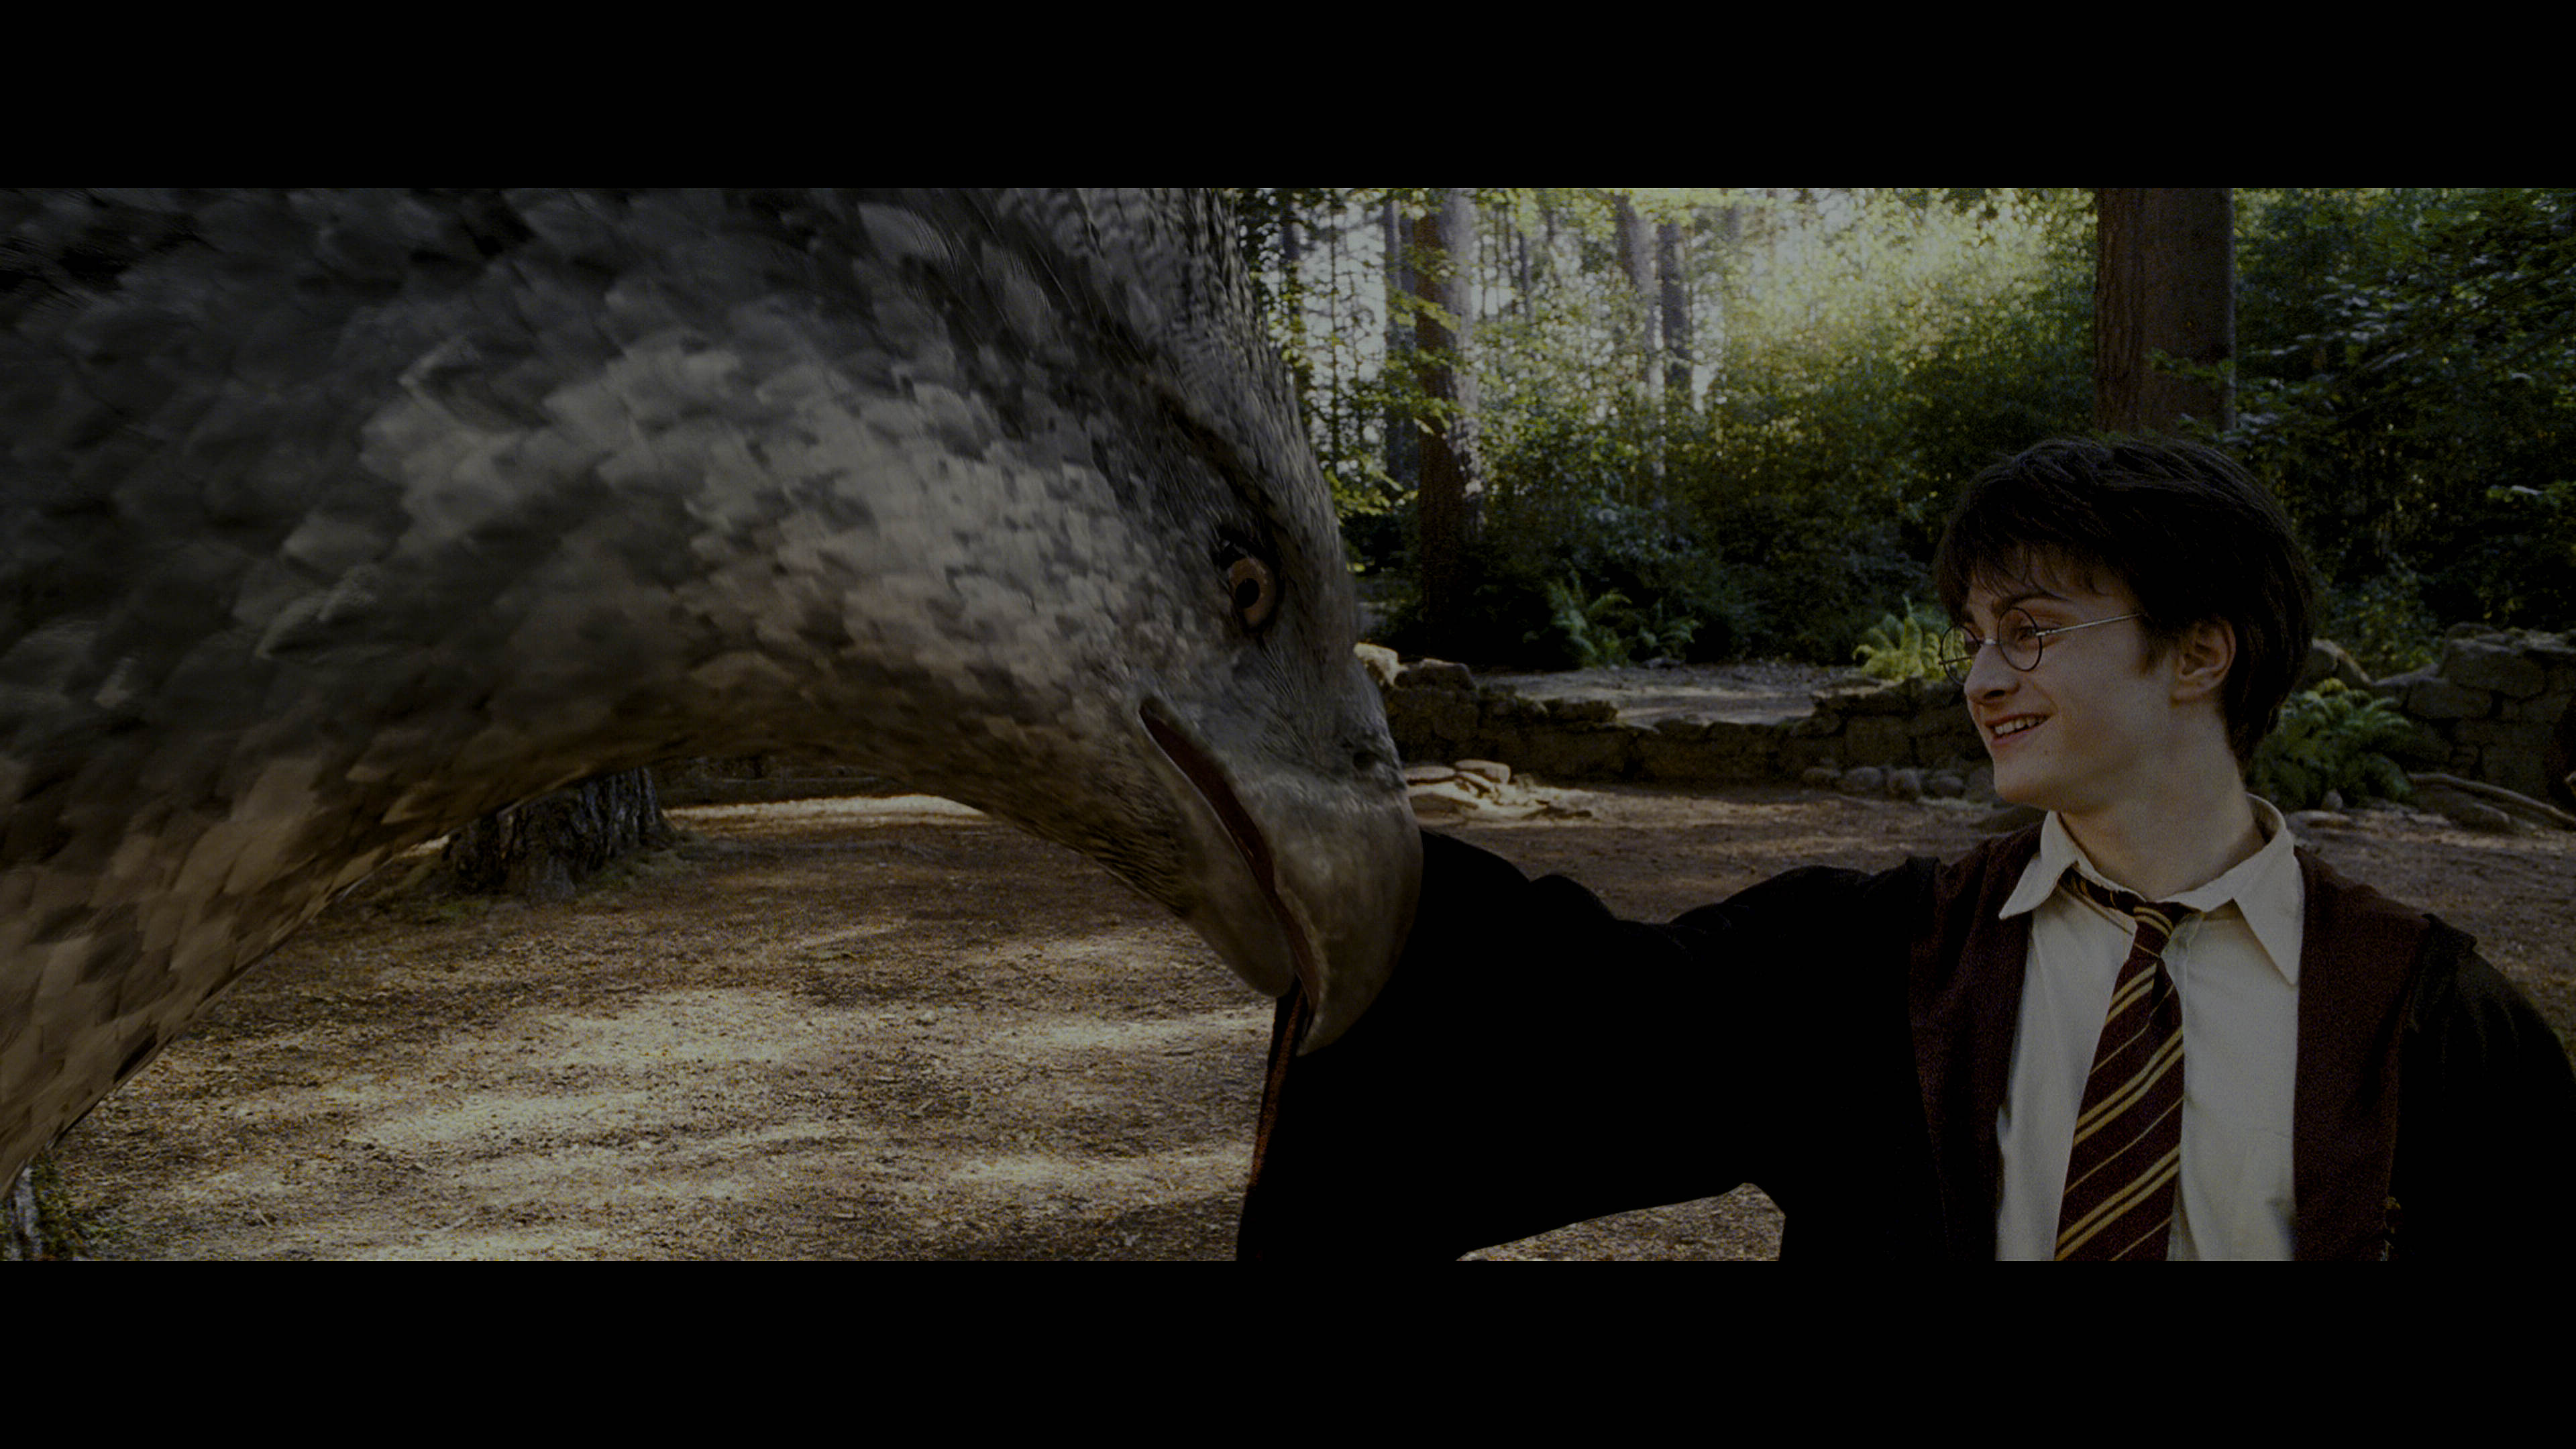 Гарри Поттер и узник Азкабана / Harry Potter and the Prisoner of Azkaban (2004/BDRemux) 2160p, 4K